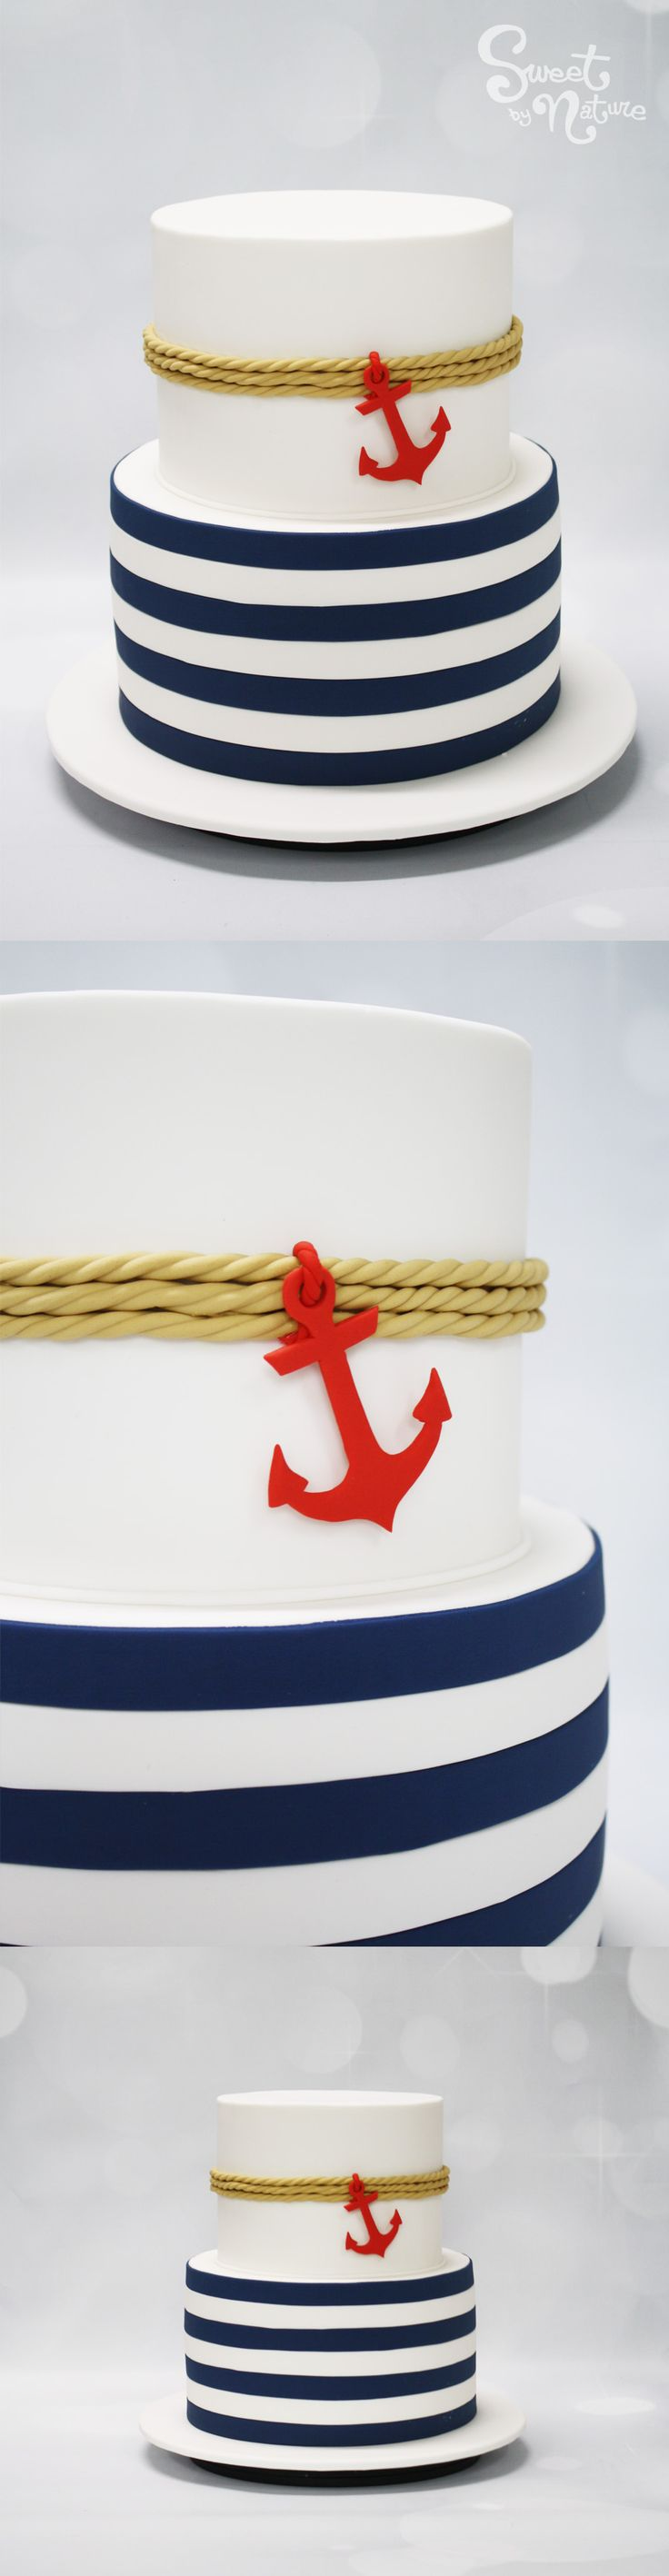 Nautical Themed Wedding Cake Finished With Icing Rope And A Red Anchor